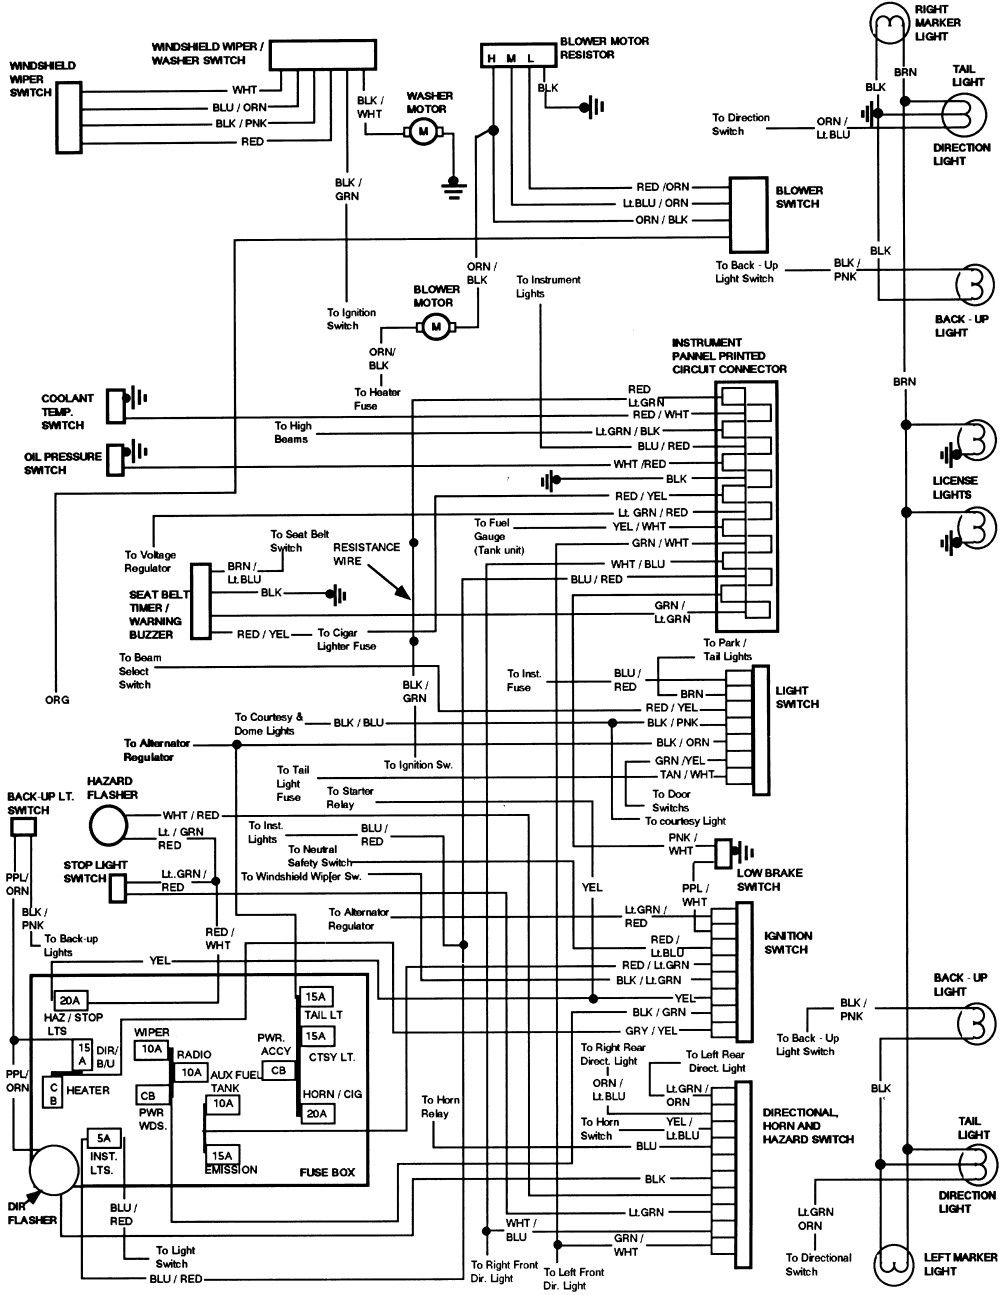 2001 Ford F150 Wiring Diagram New In 2020 Diagram Design Ford F150 Trailer Wiring Diagram